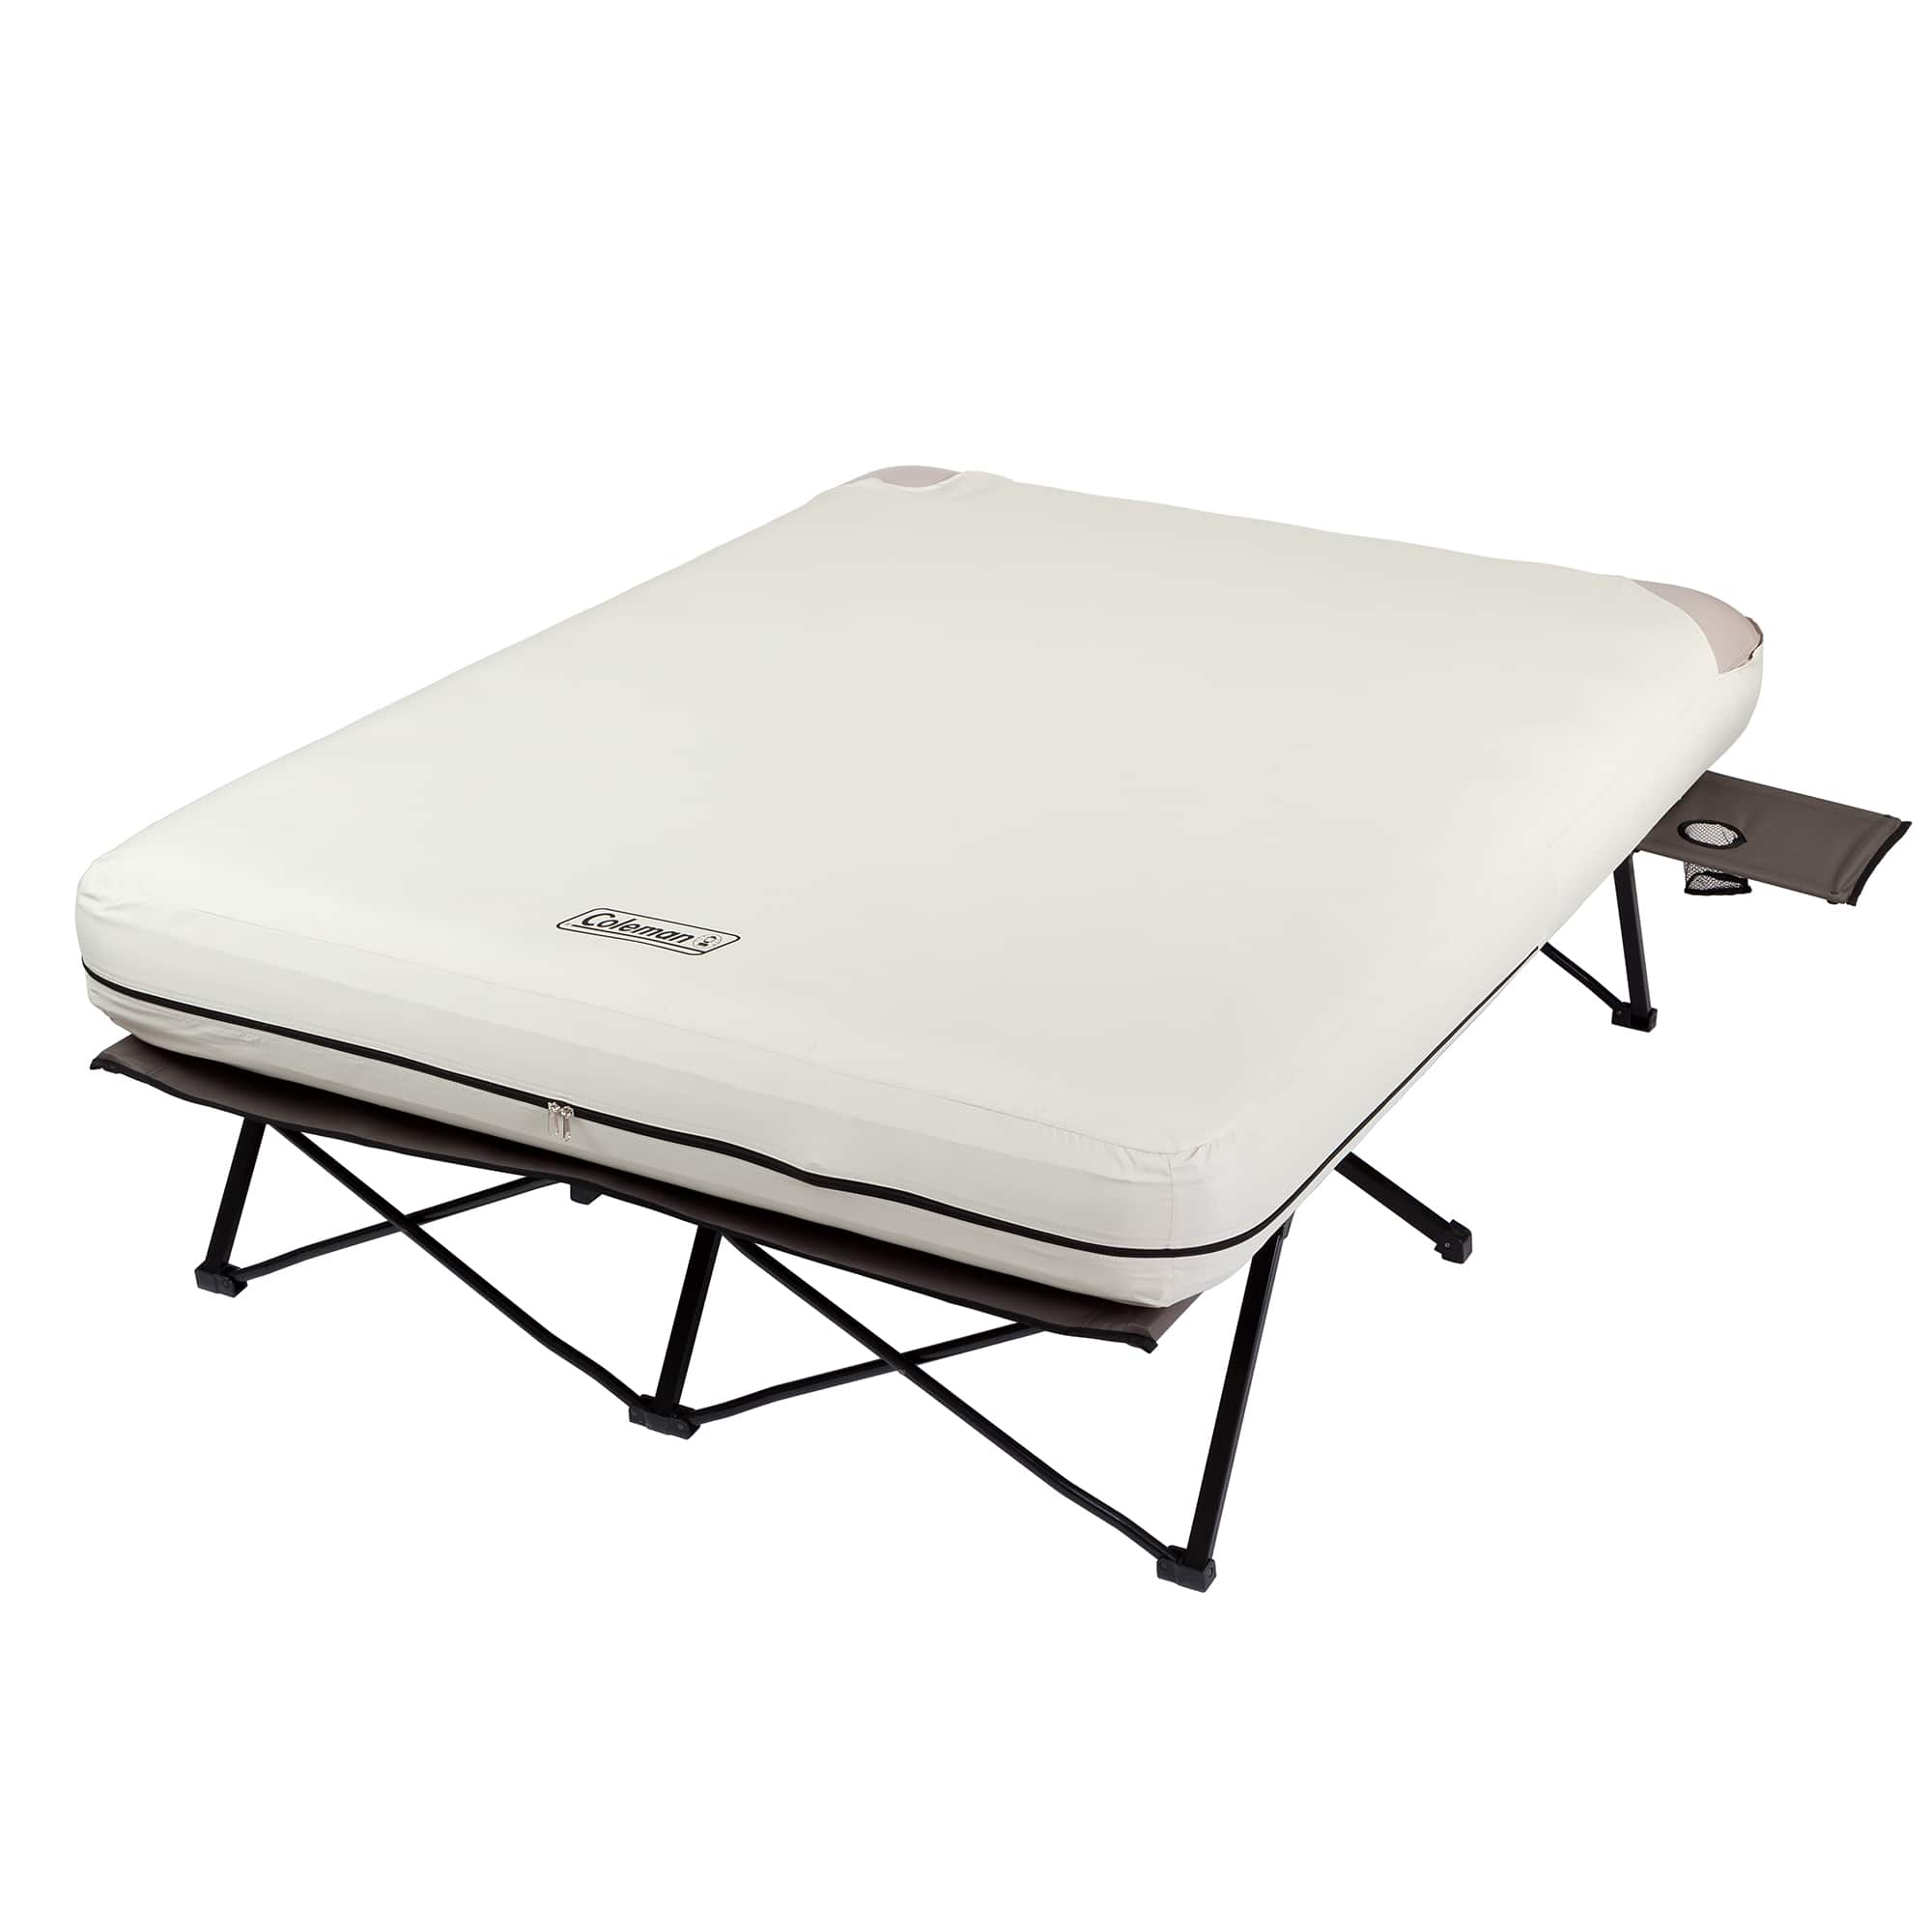 Coleman Folding Cot w/ Side Tables, Queen Airbed, and Battery Pump + Free Shipping at Amazon $93.72